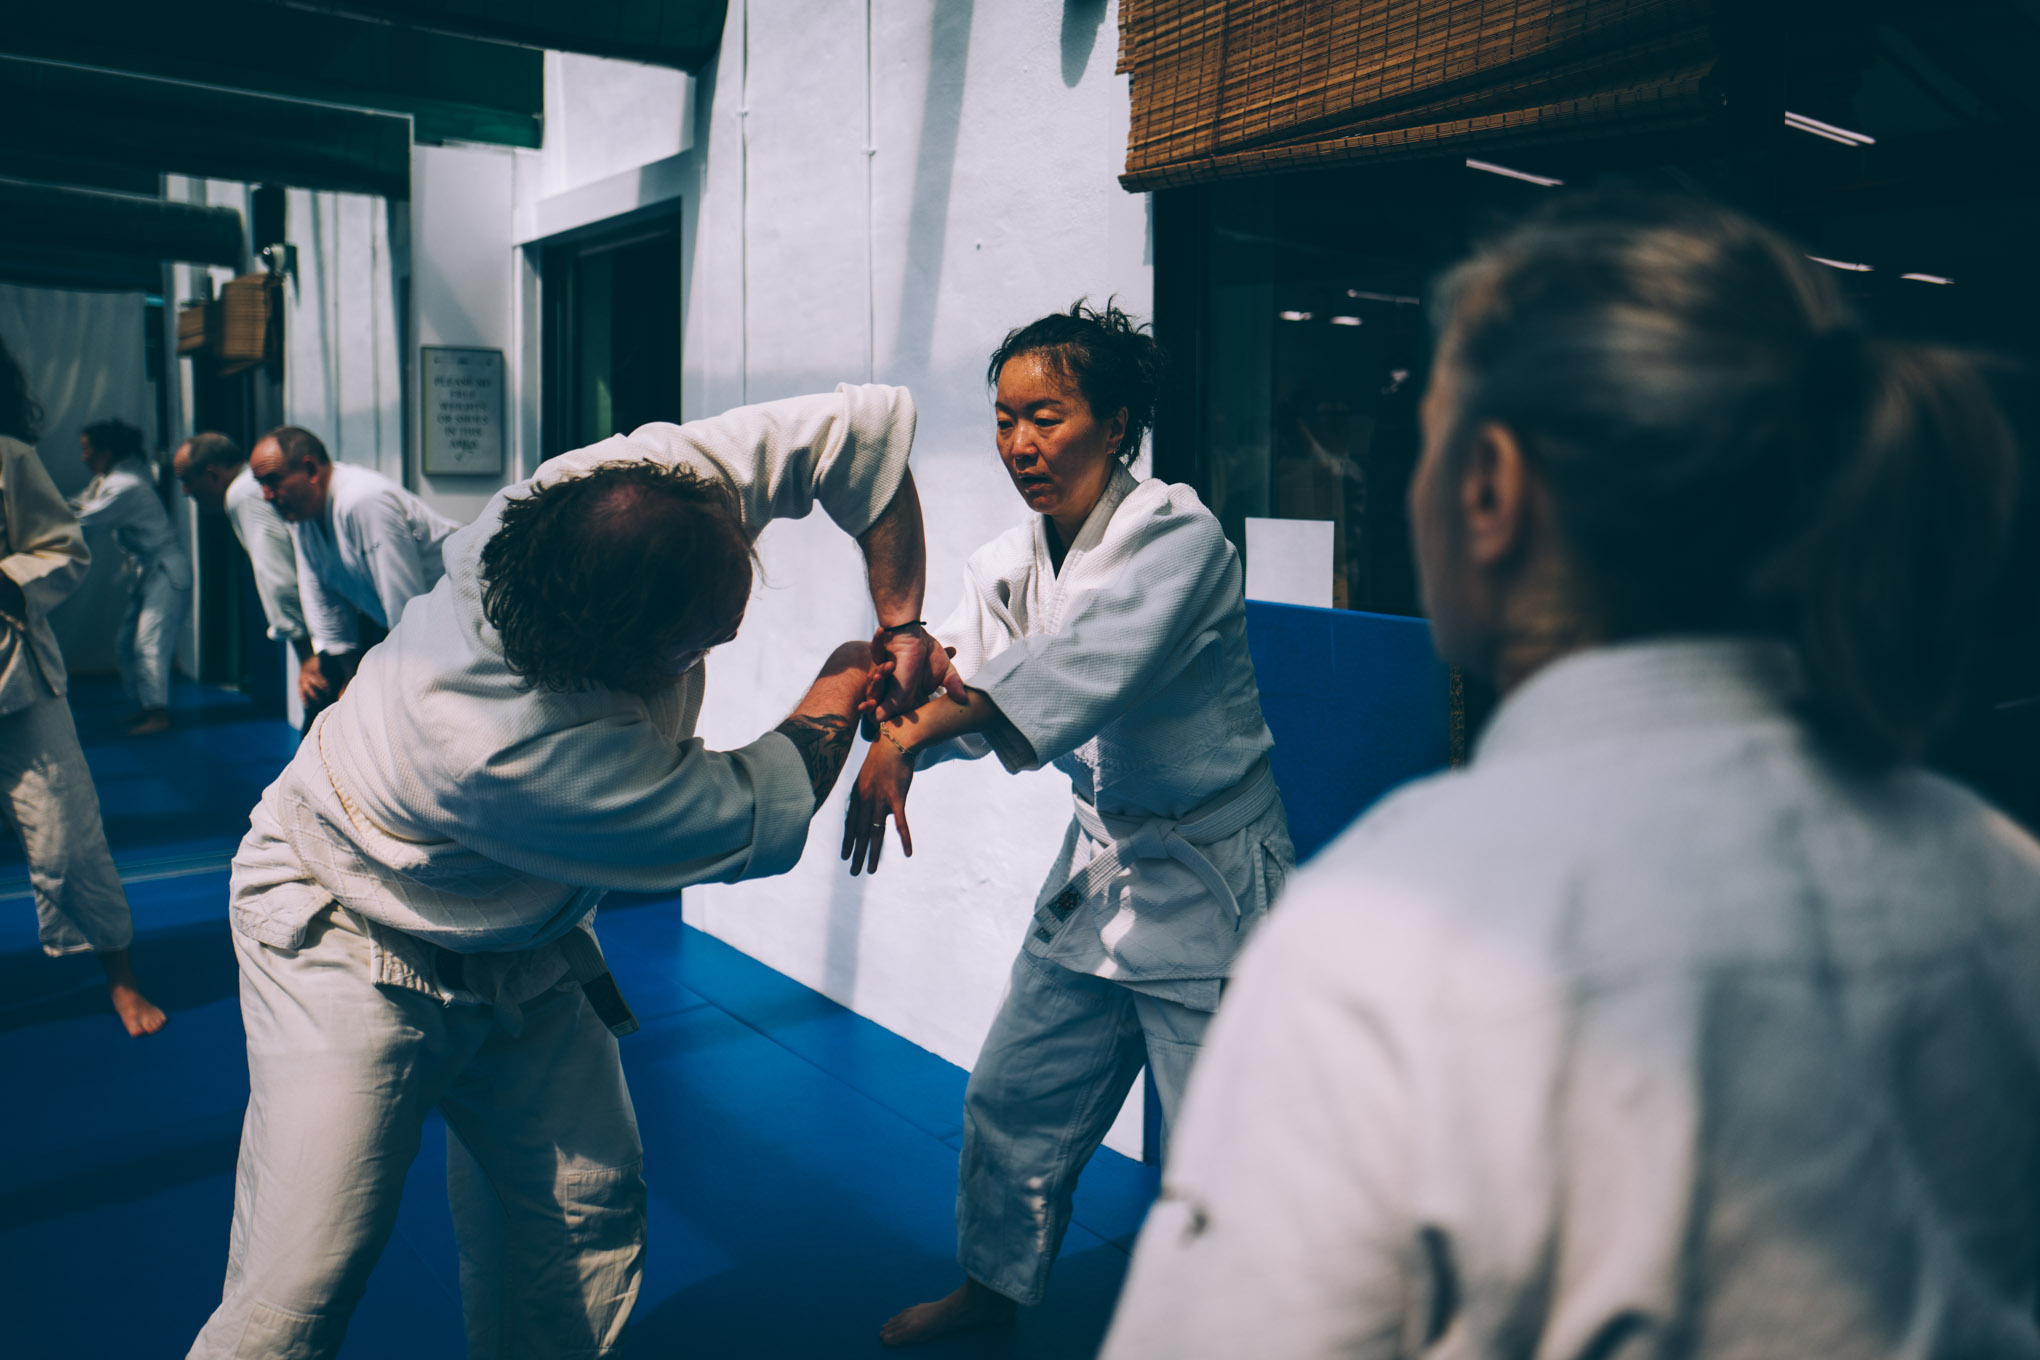 Claire Keller observes beginners practicing during an Aikido class at Bushwick Dojo in Brooklyn, New York